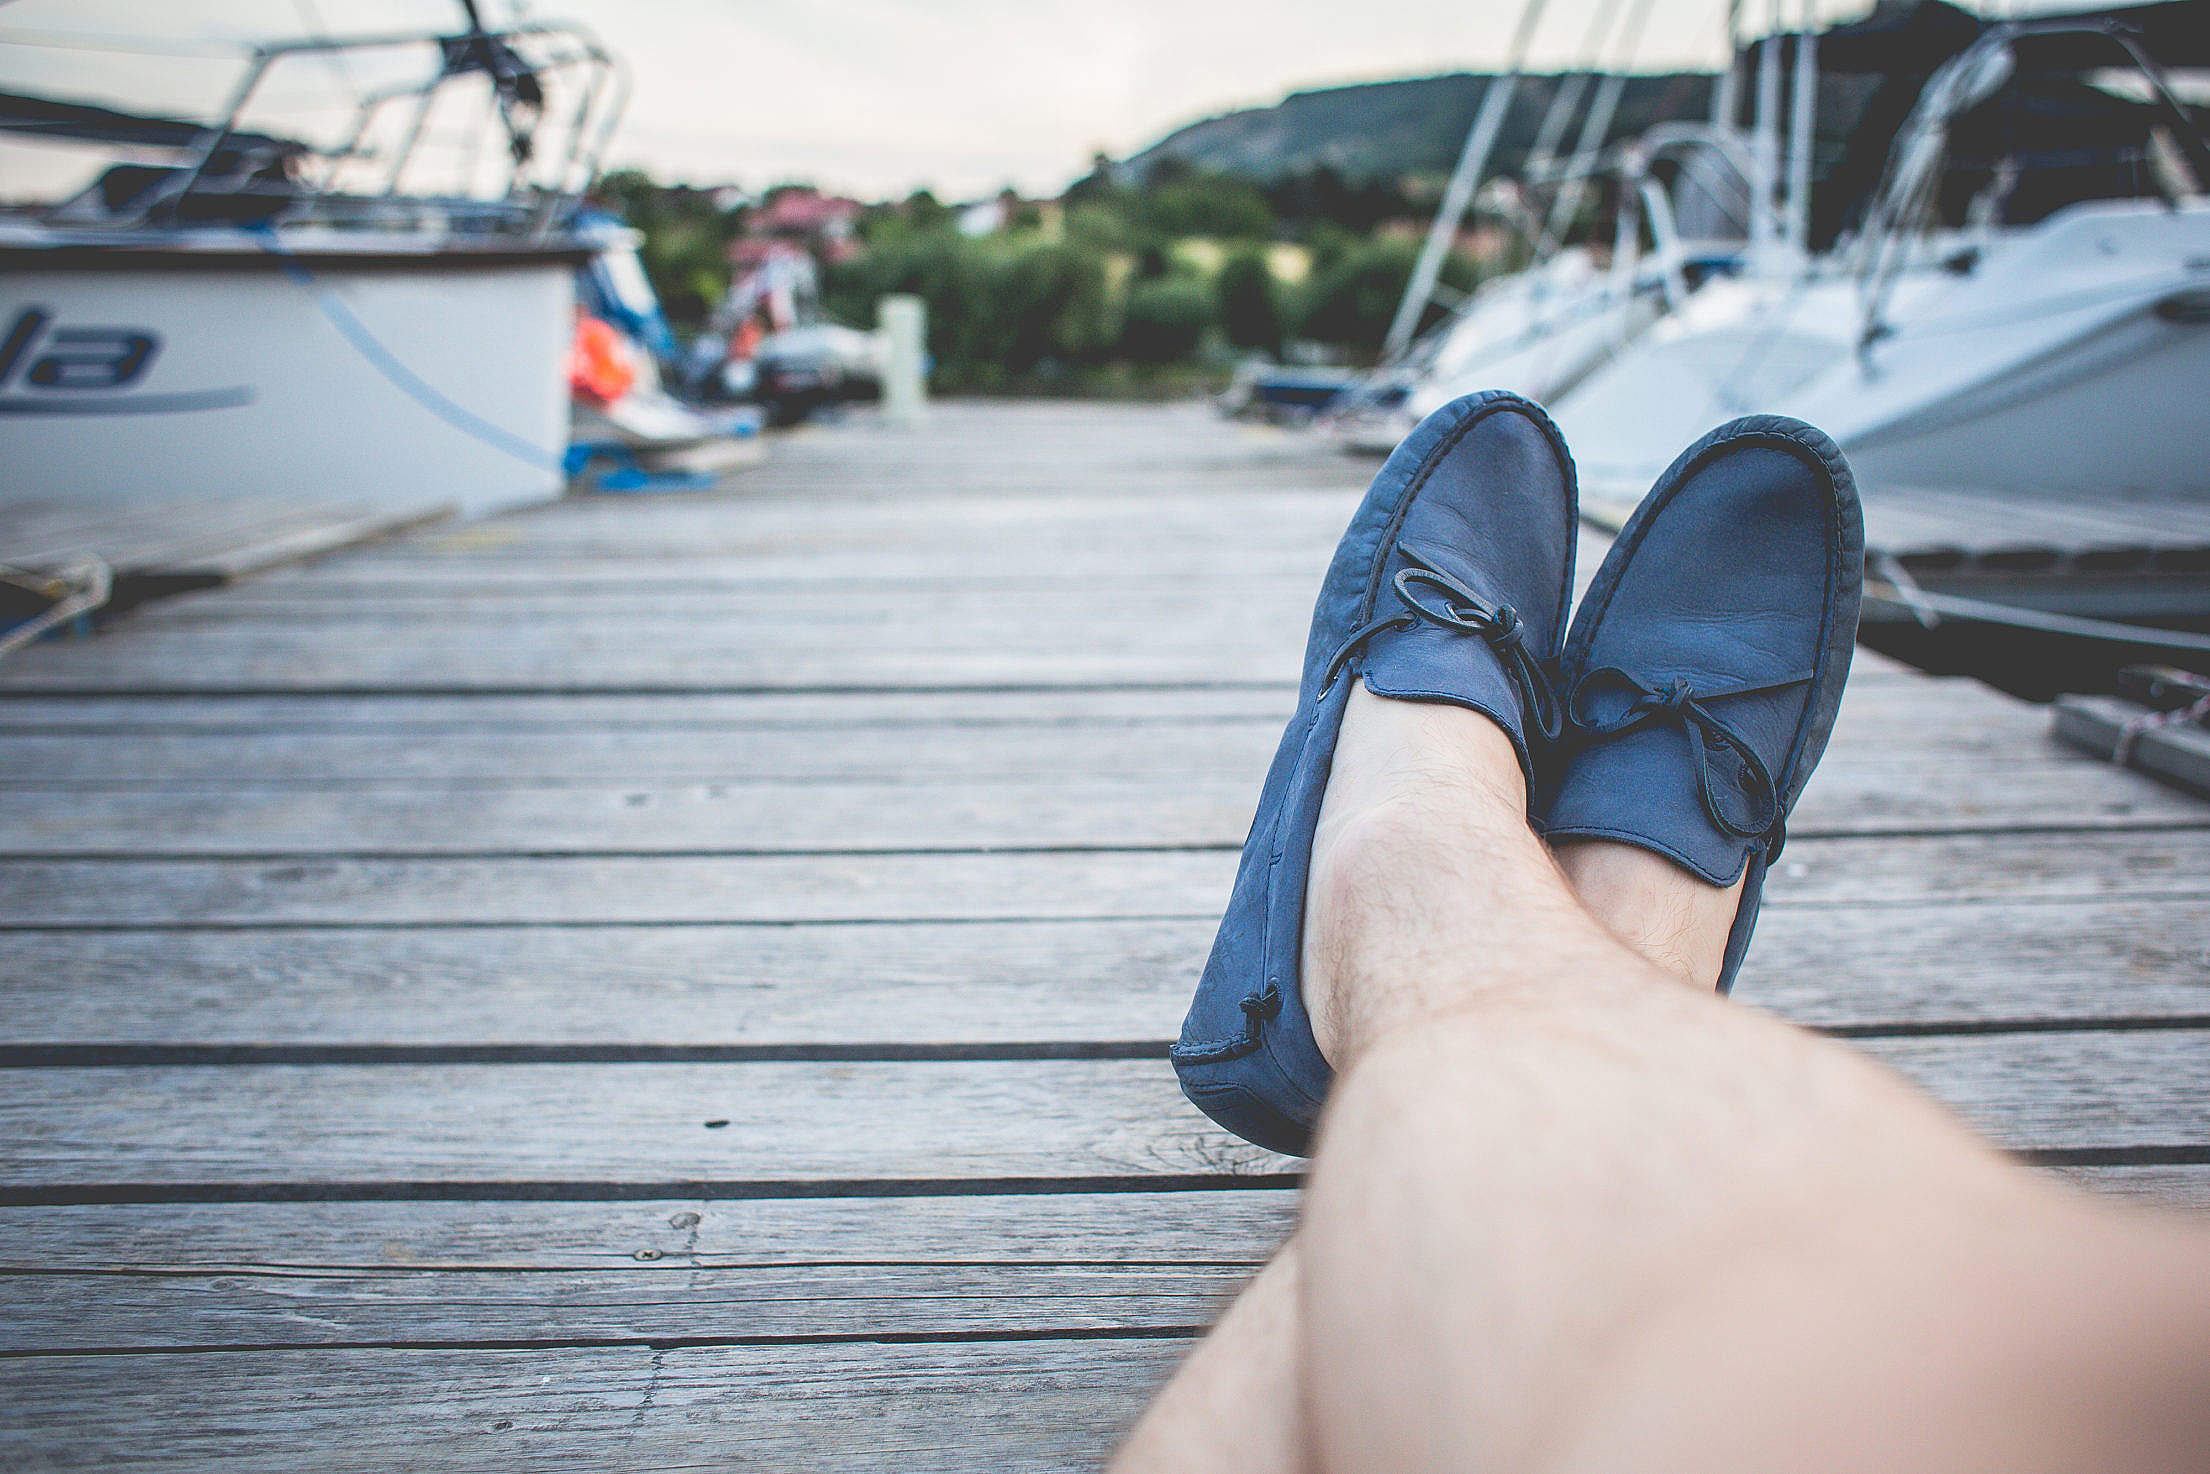 Blue Leather Boat Shoes Free Stock Photo